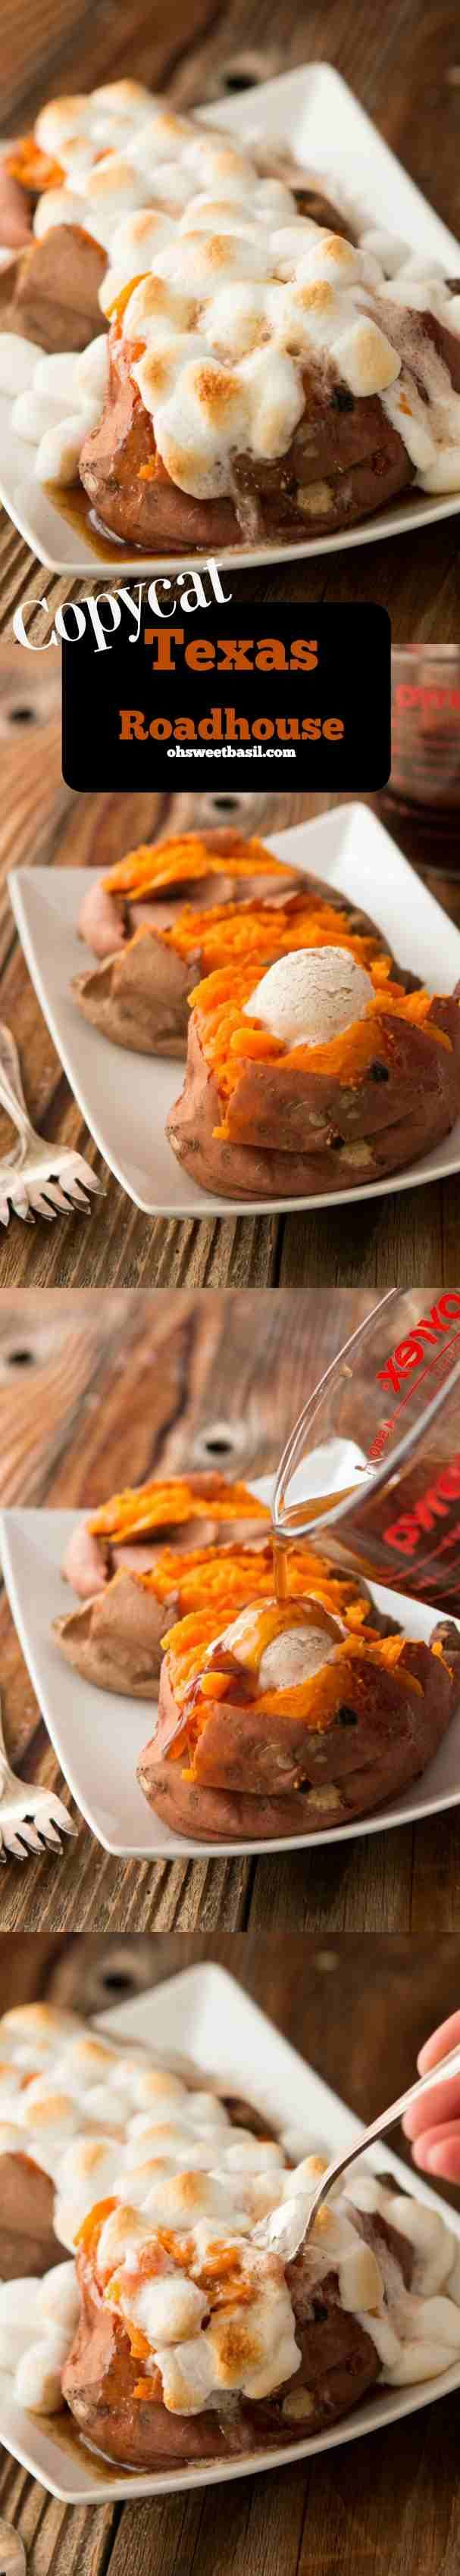 Who needs the restaurant when you can make copycat Texas Roadhouse Loaded Sweet Potatoes at home?! ohsweetbasil.com